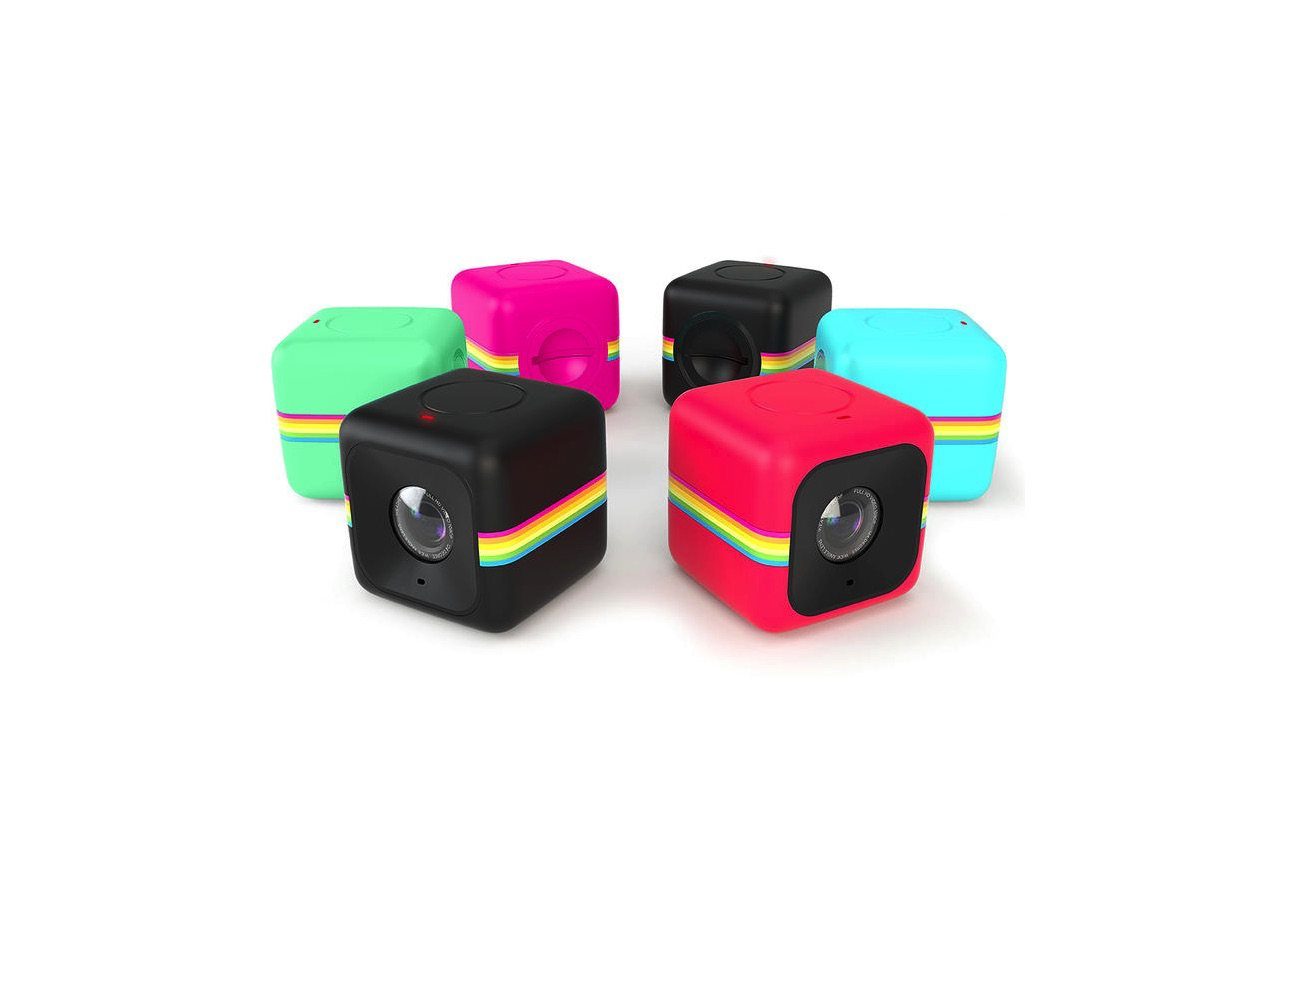 Polaroid Cube With WiFi